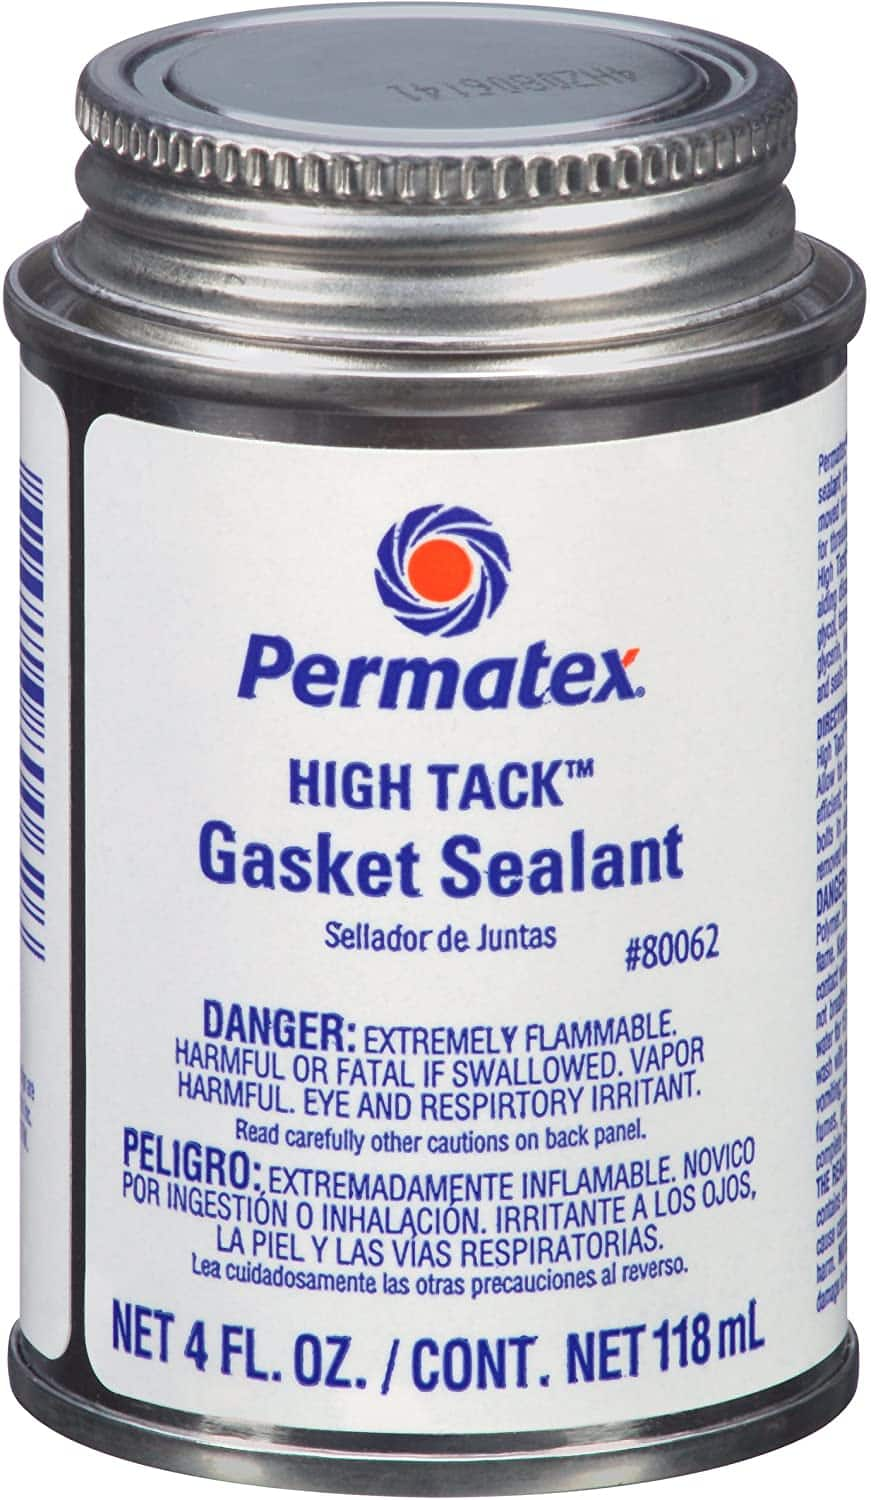 Permatex 80062 High Tack Gasket Sealant, 4 oz, $3.10 w/ S&S, Amazon